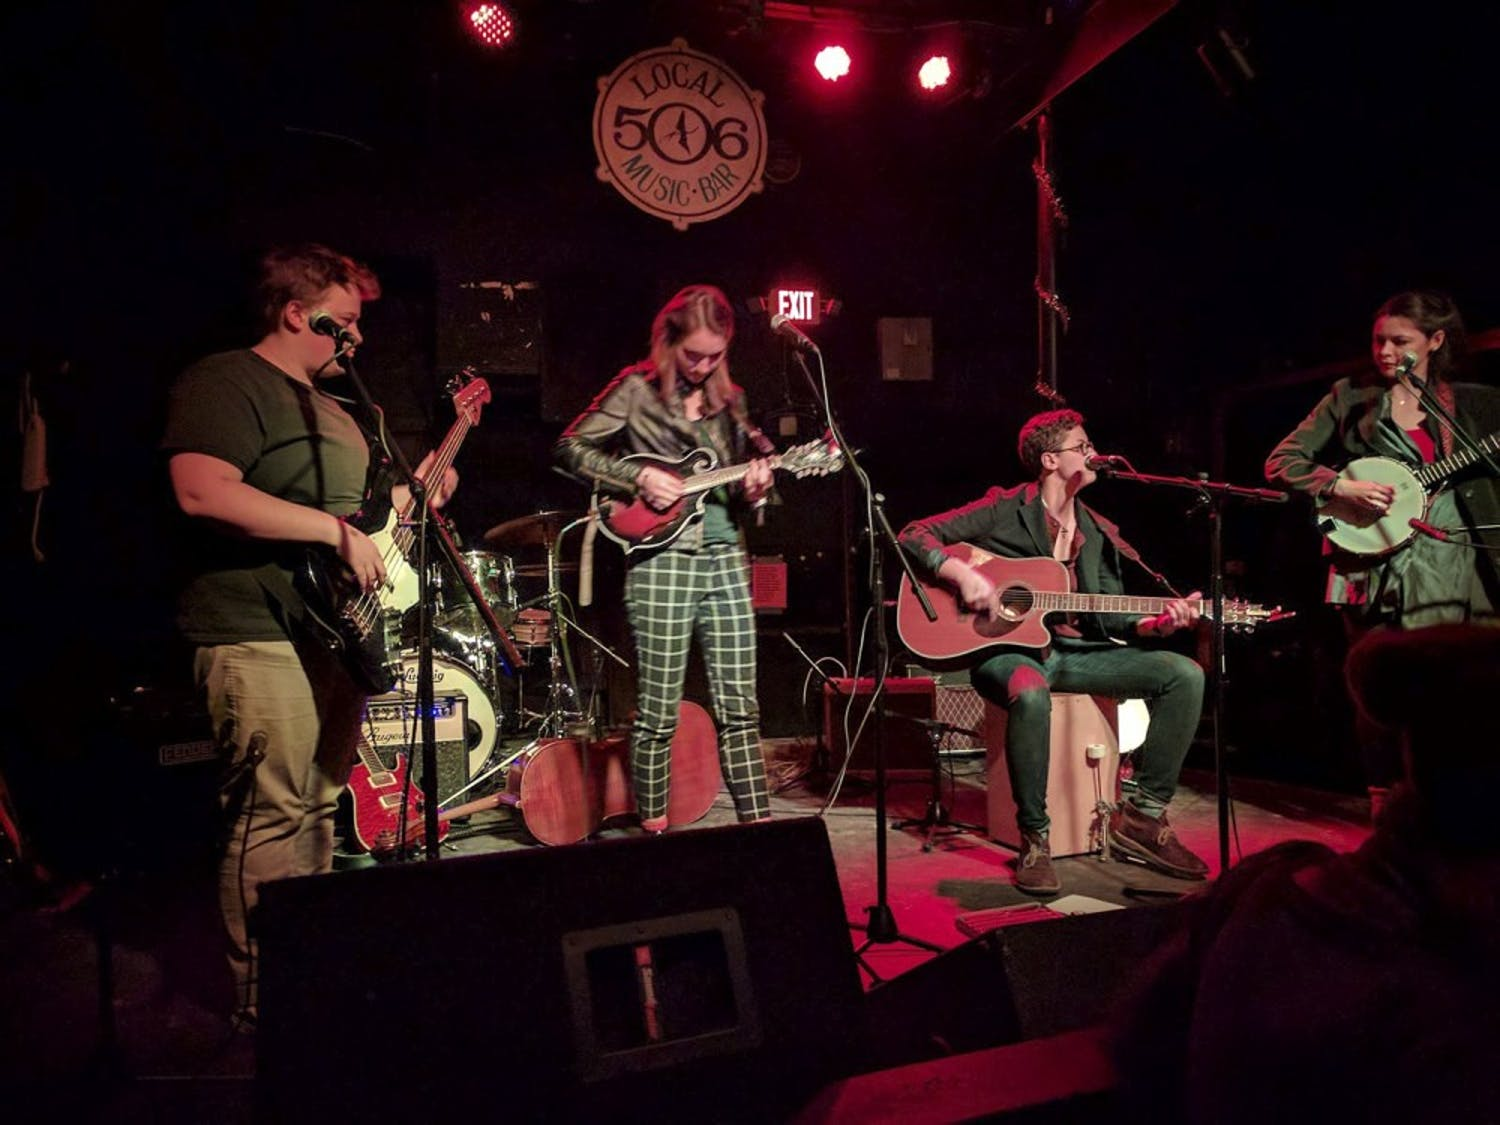 """Dissimilar Southdescribes its sound as """"meaty, heart-breaking southern-folk."""" Photo Courtesy of Dissimilar South."""